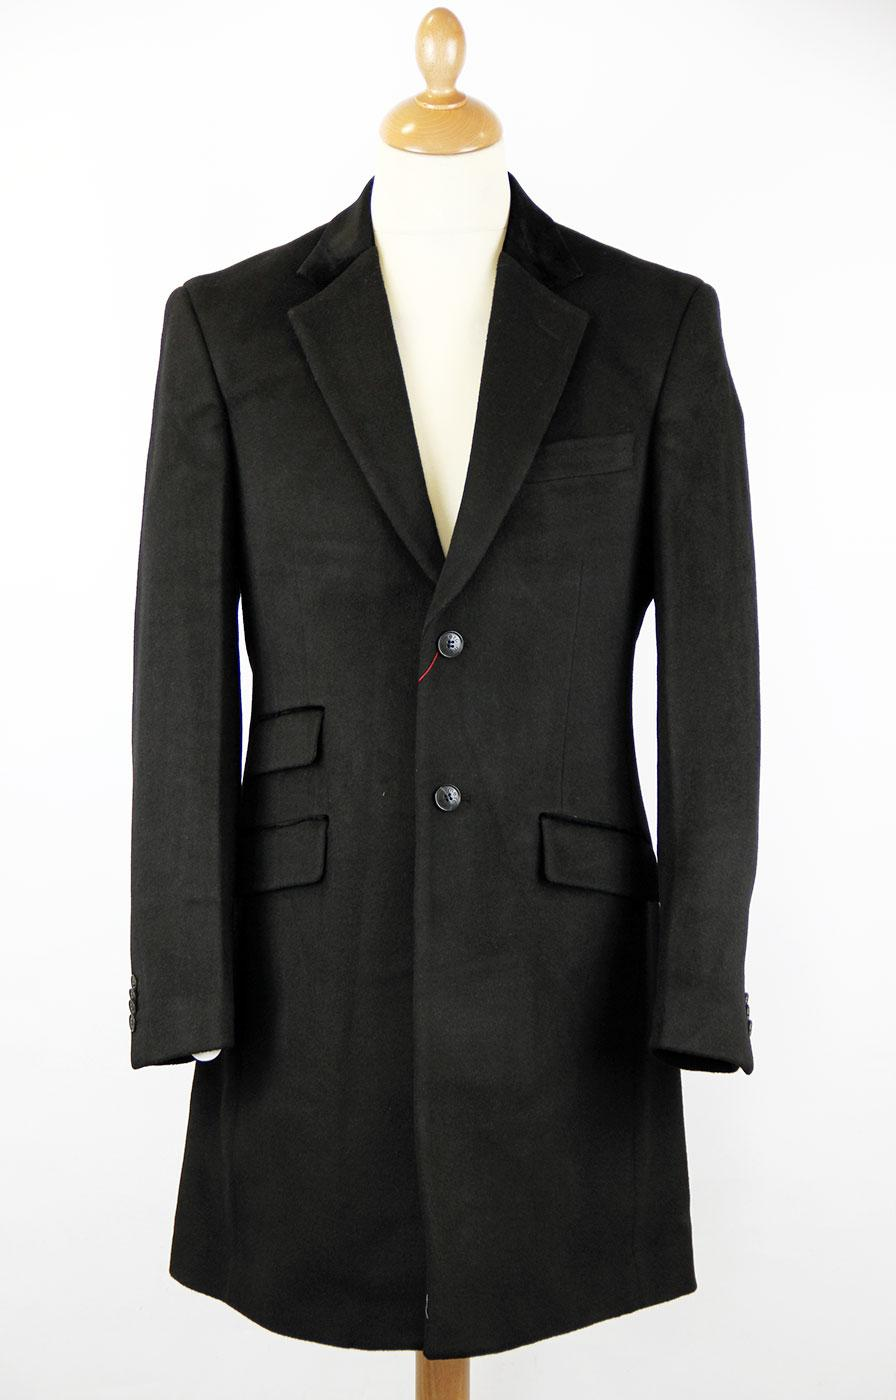 Lord John II MERC Retro Tailored Mod Overcoat (B)